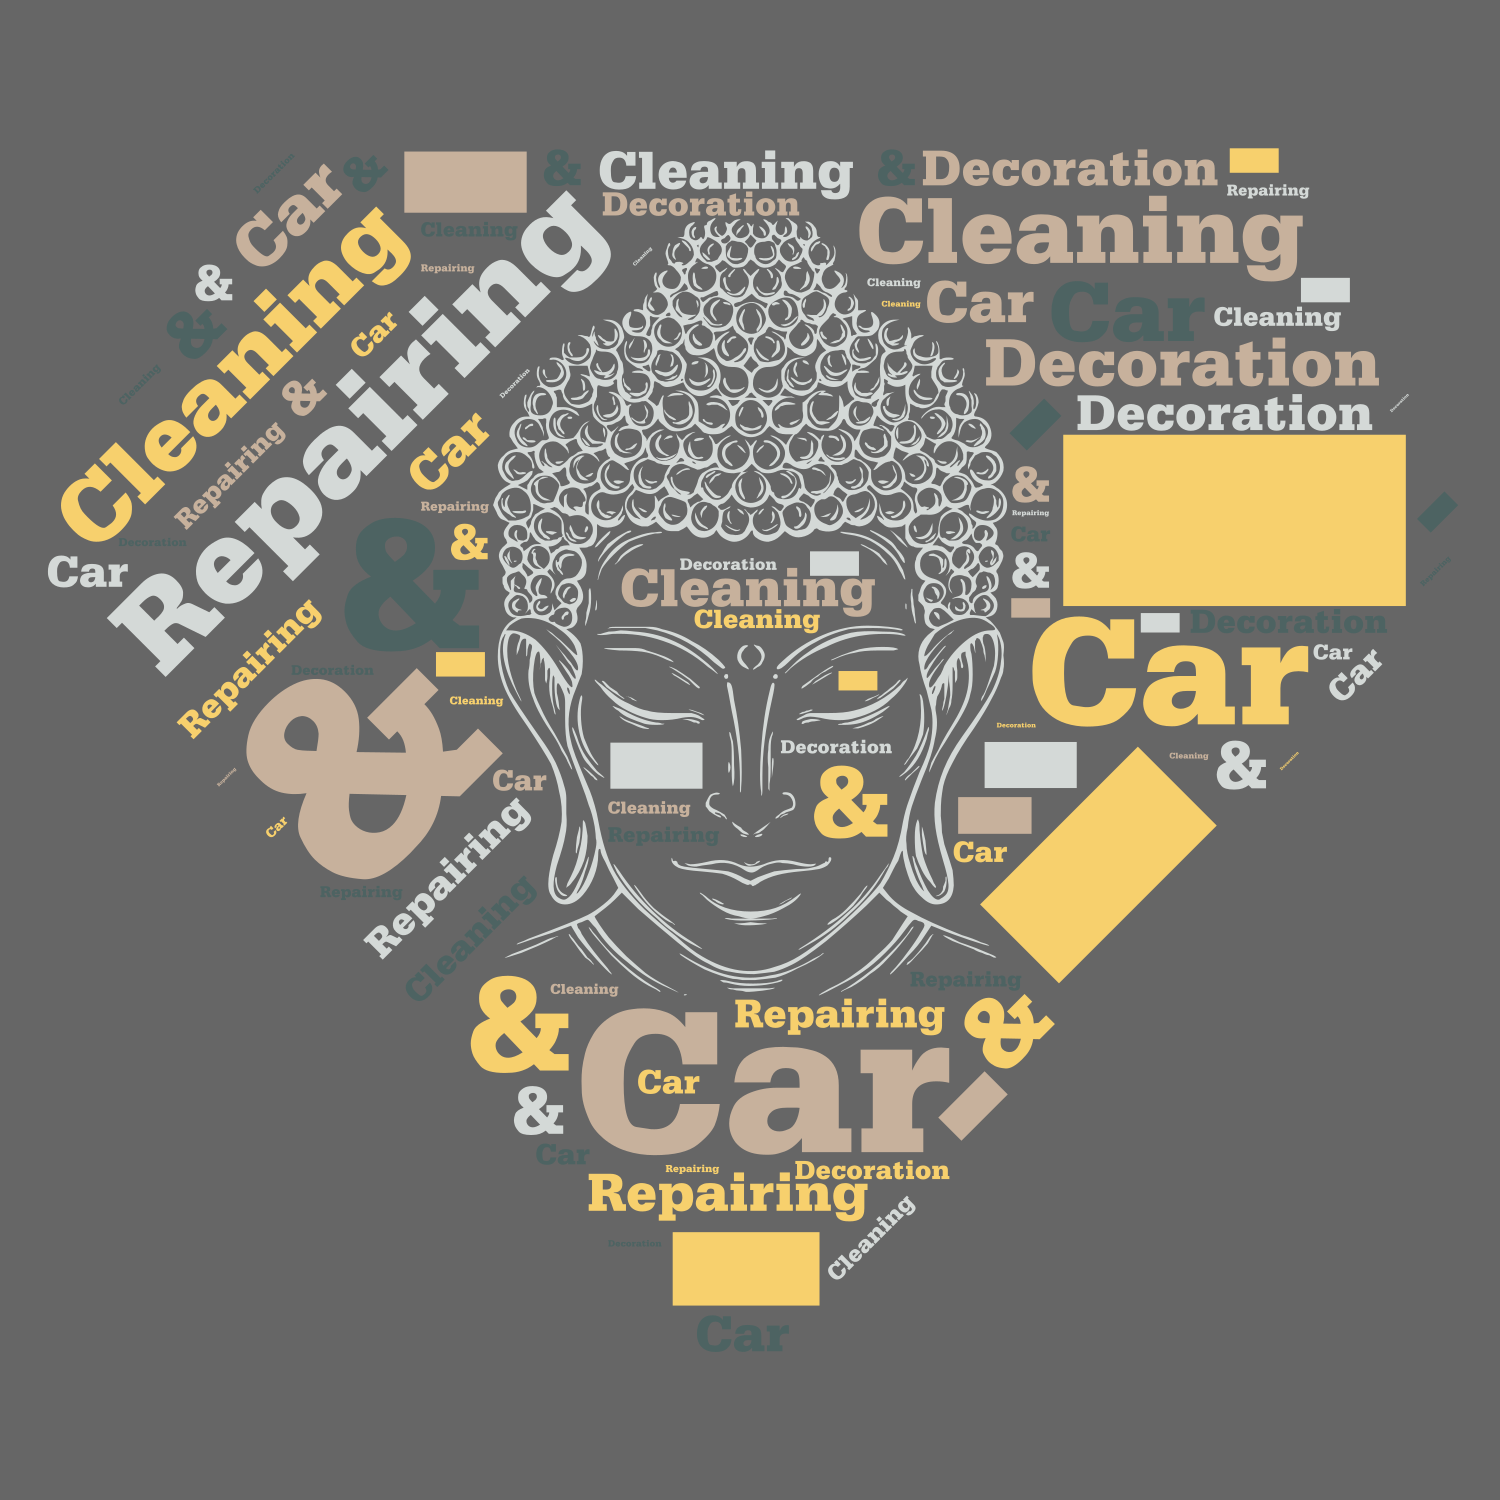 Car Cleaning - Repairing & Decoration